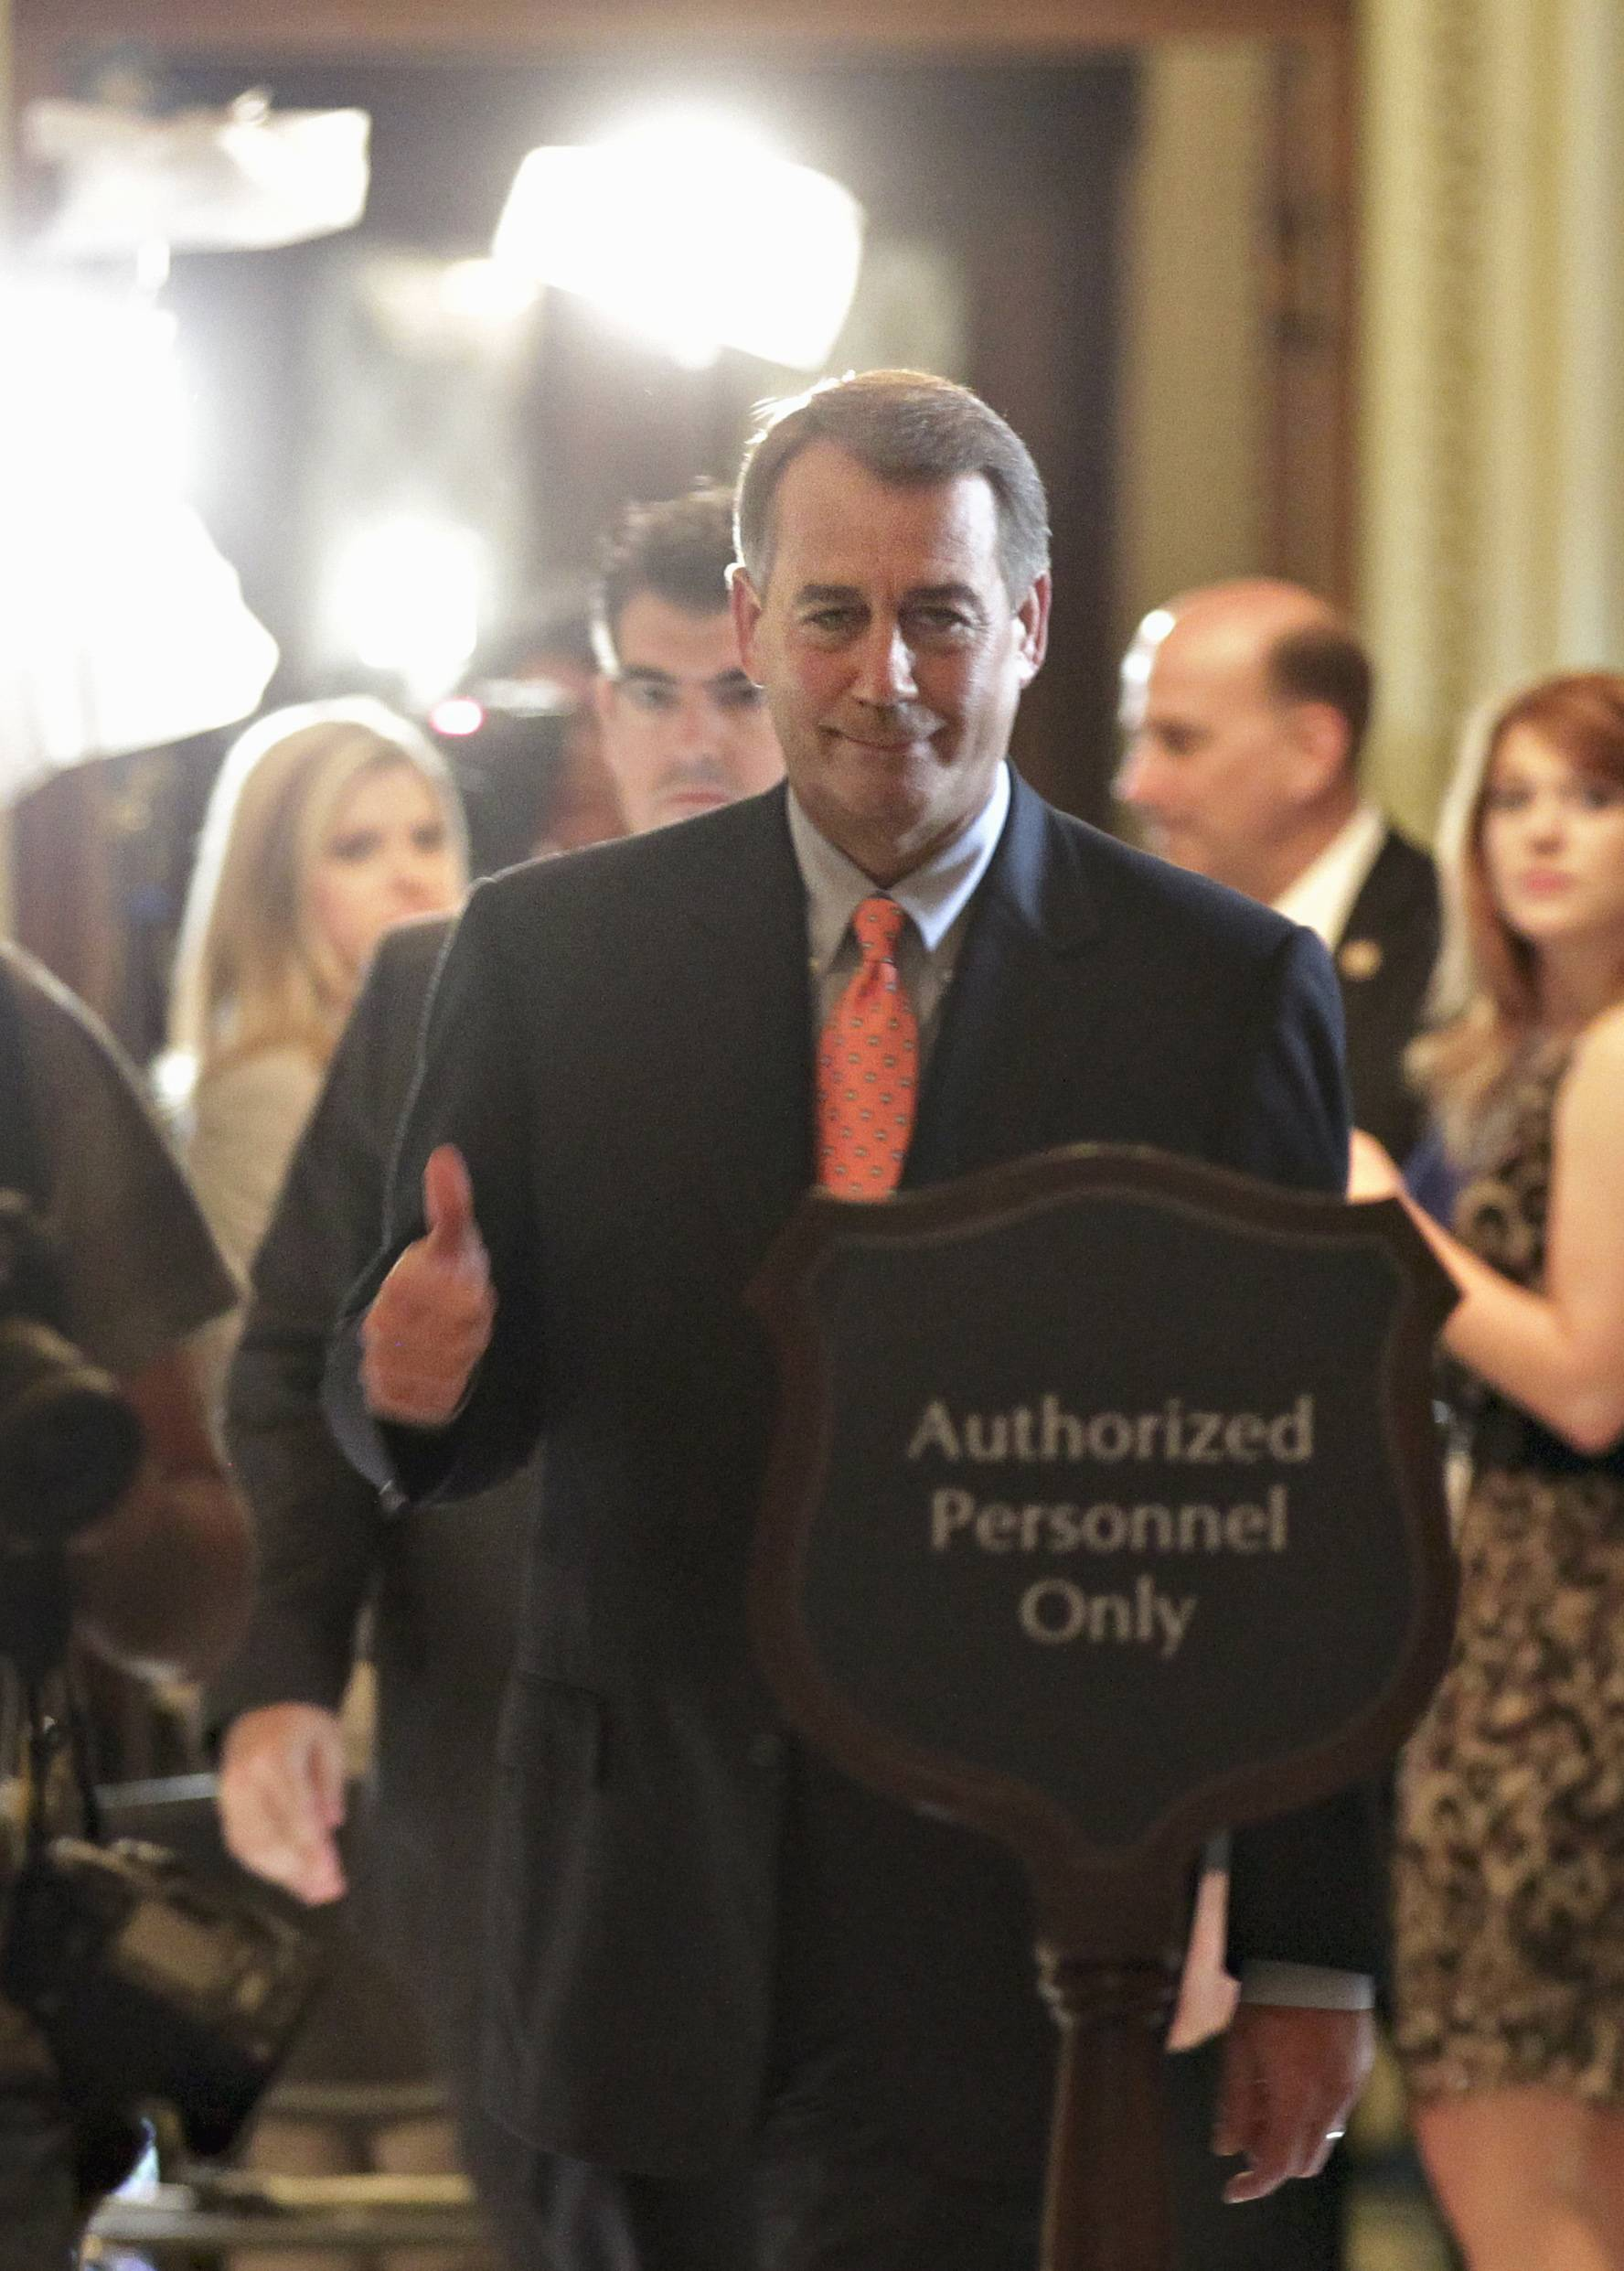 John Boehner leaves the House Chamber Friday after House passage of his debt-limit legislation that was rewritten overnight to win the support of conservative holdouts.